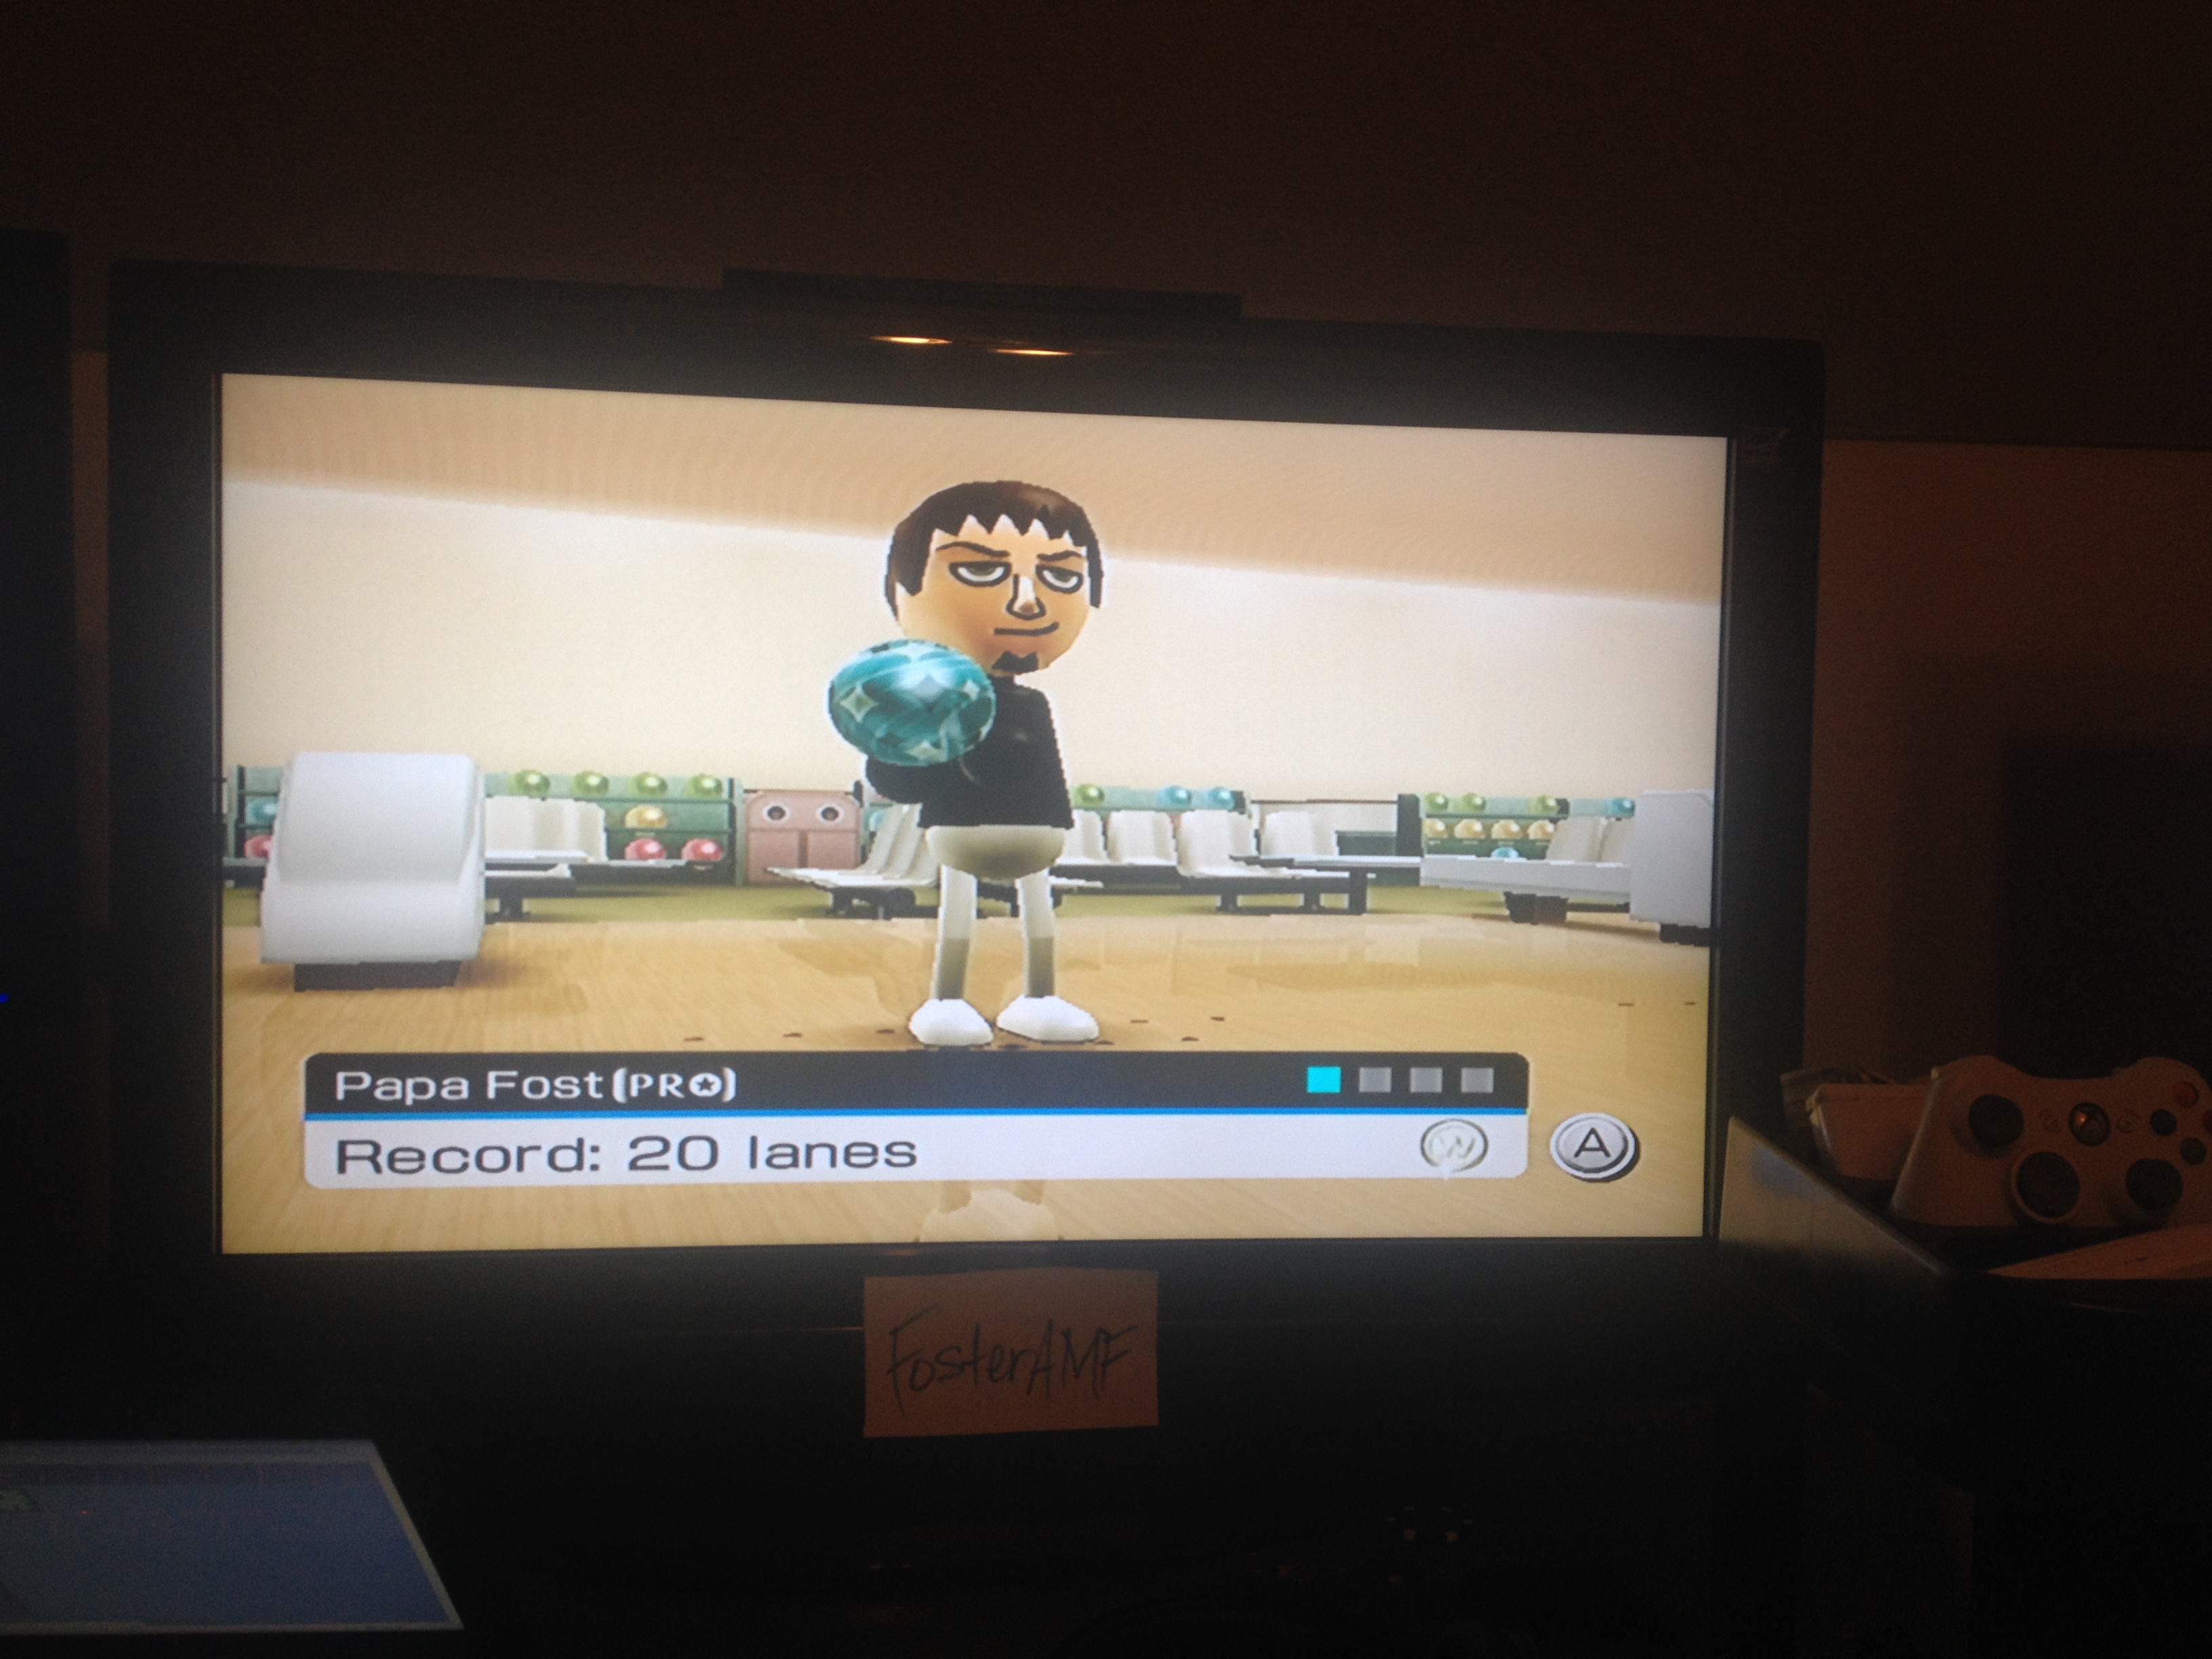 FosterAMF: Wii Sports: Bowling [Picking Up Spares] (Wii) 20 points on 2014-05-13 00:40:05